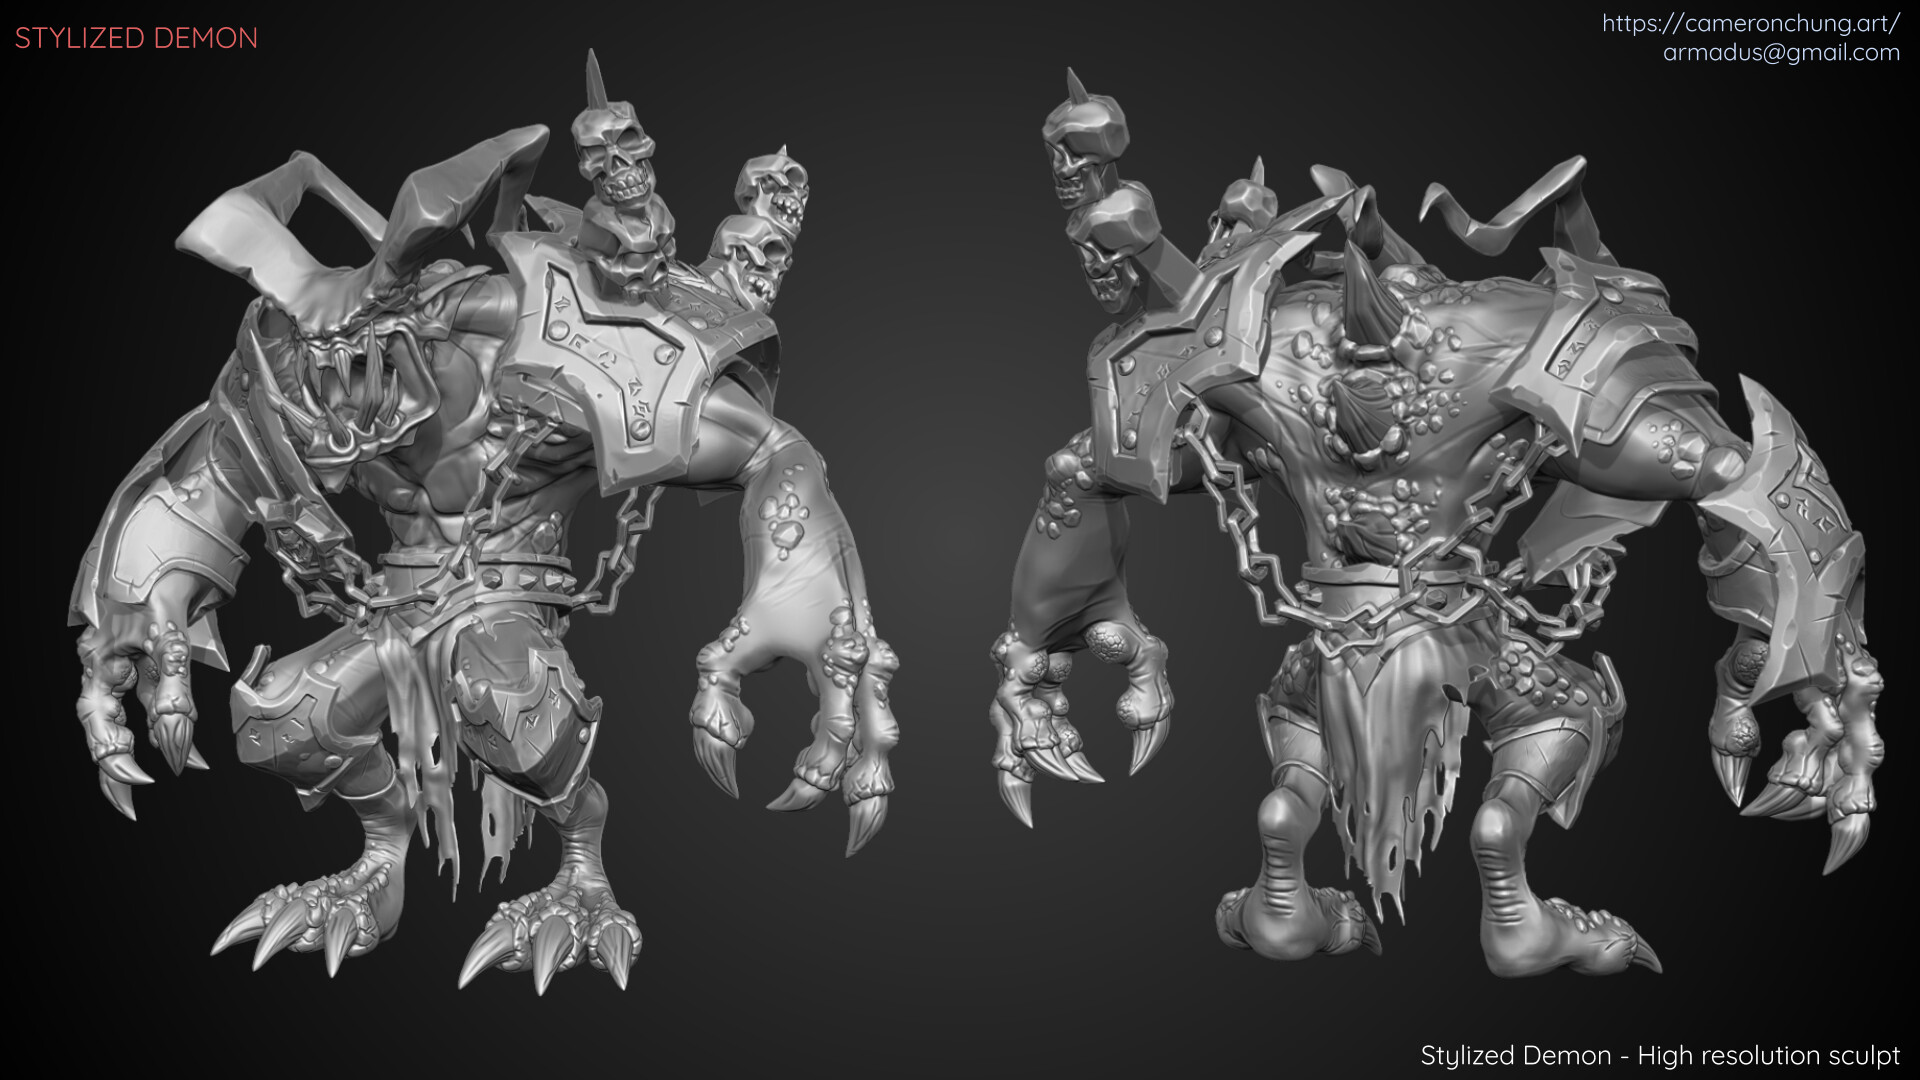 Stylized Demon - Zbrush sculpt